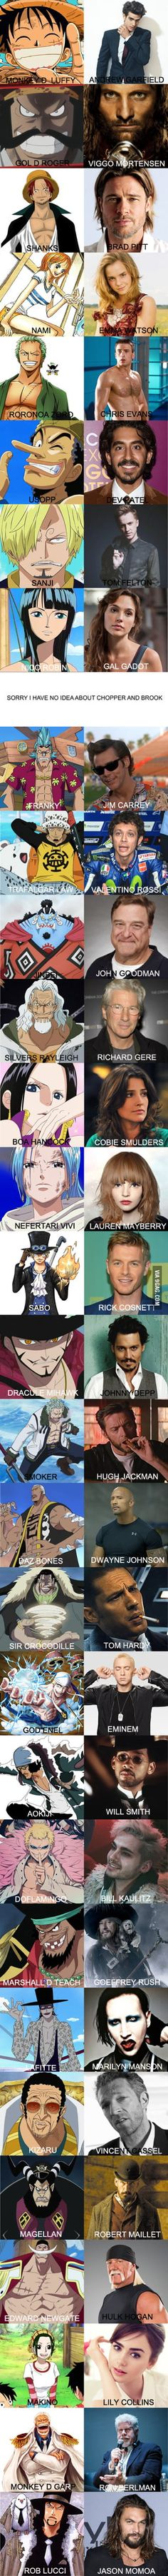 This is my One Piece live action dream cast, what do you think